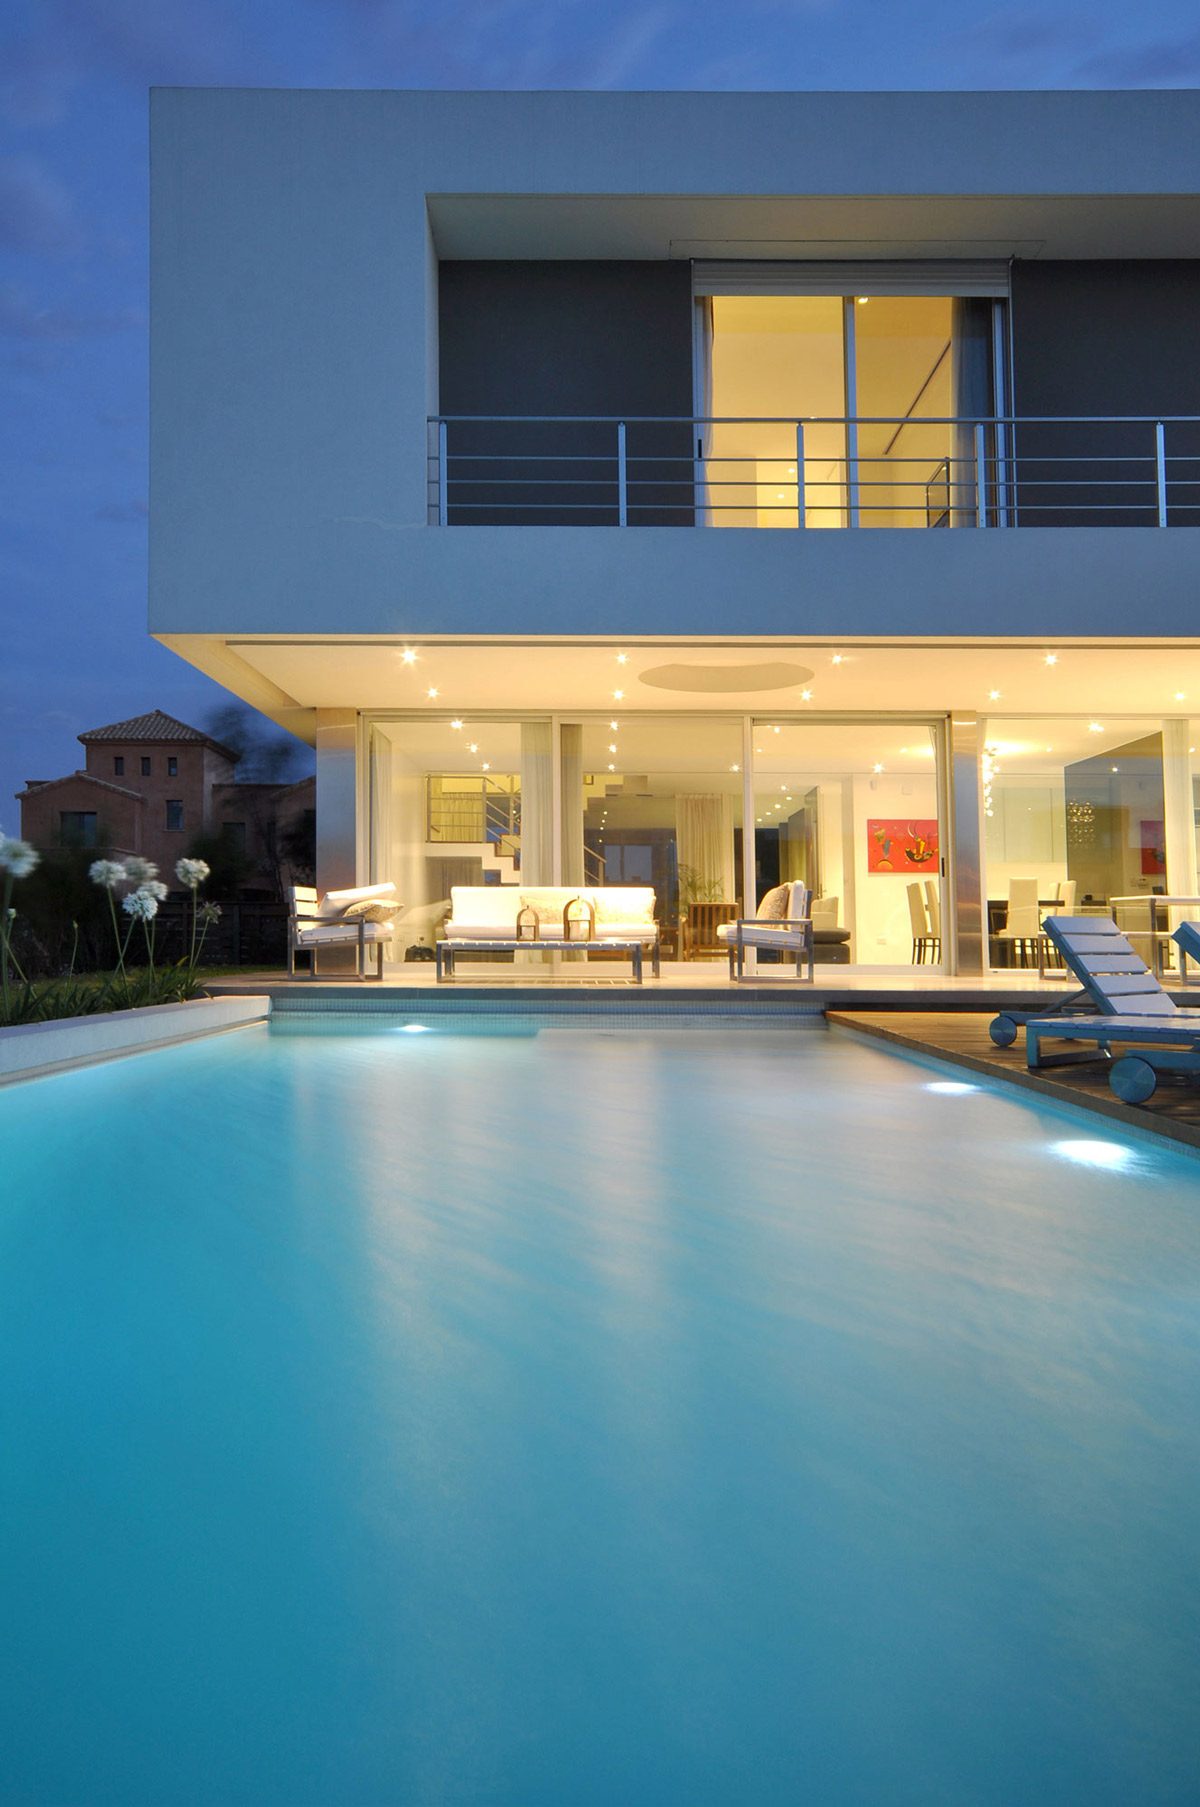 Pool Lights, Evening, S-Shaped House in Cabos del Lago, Argentina